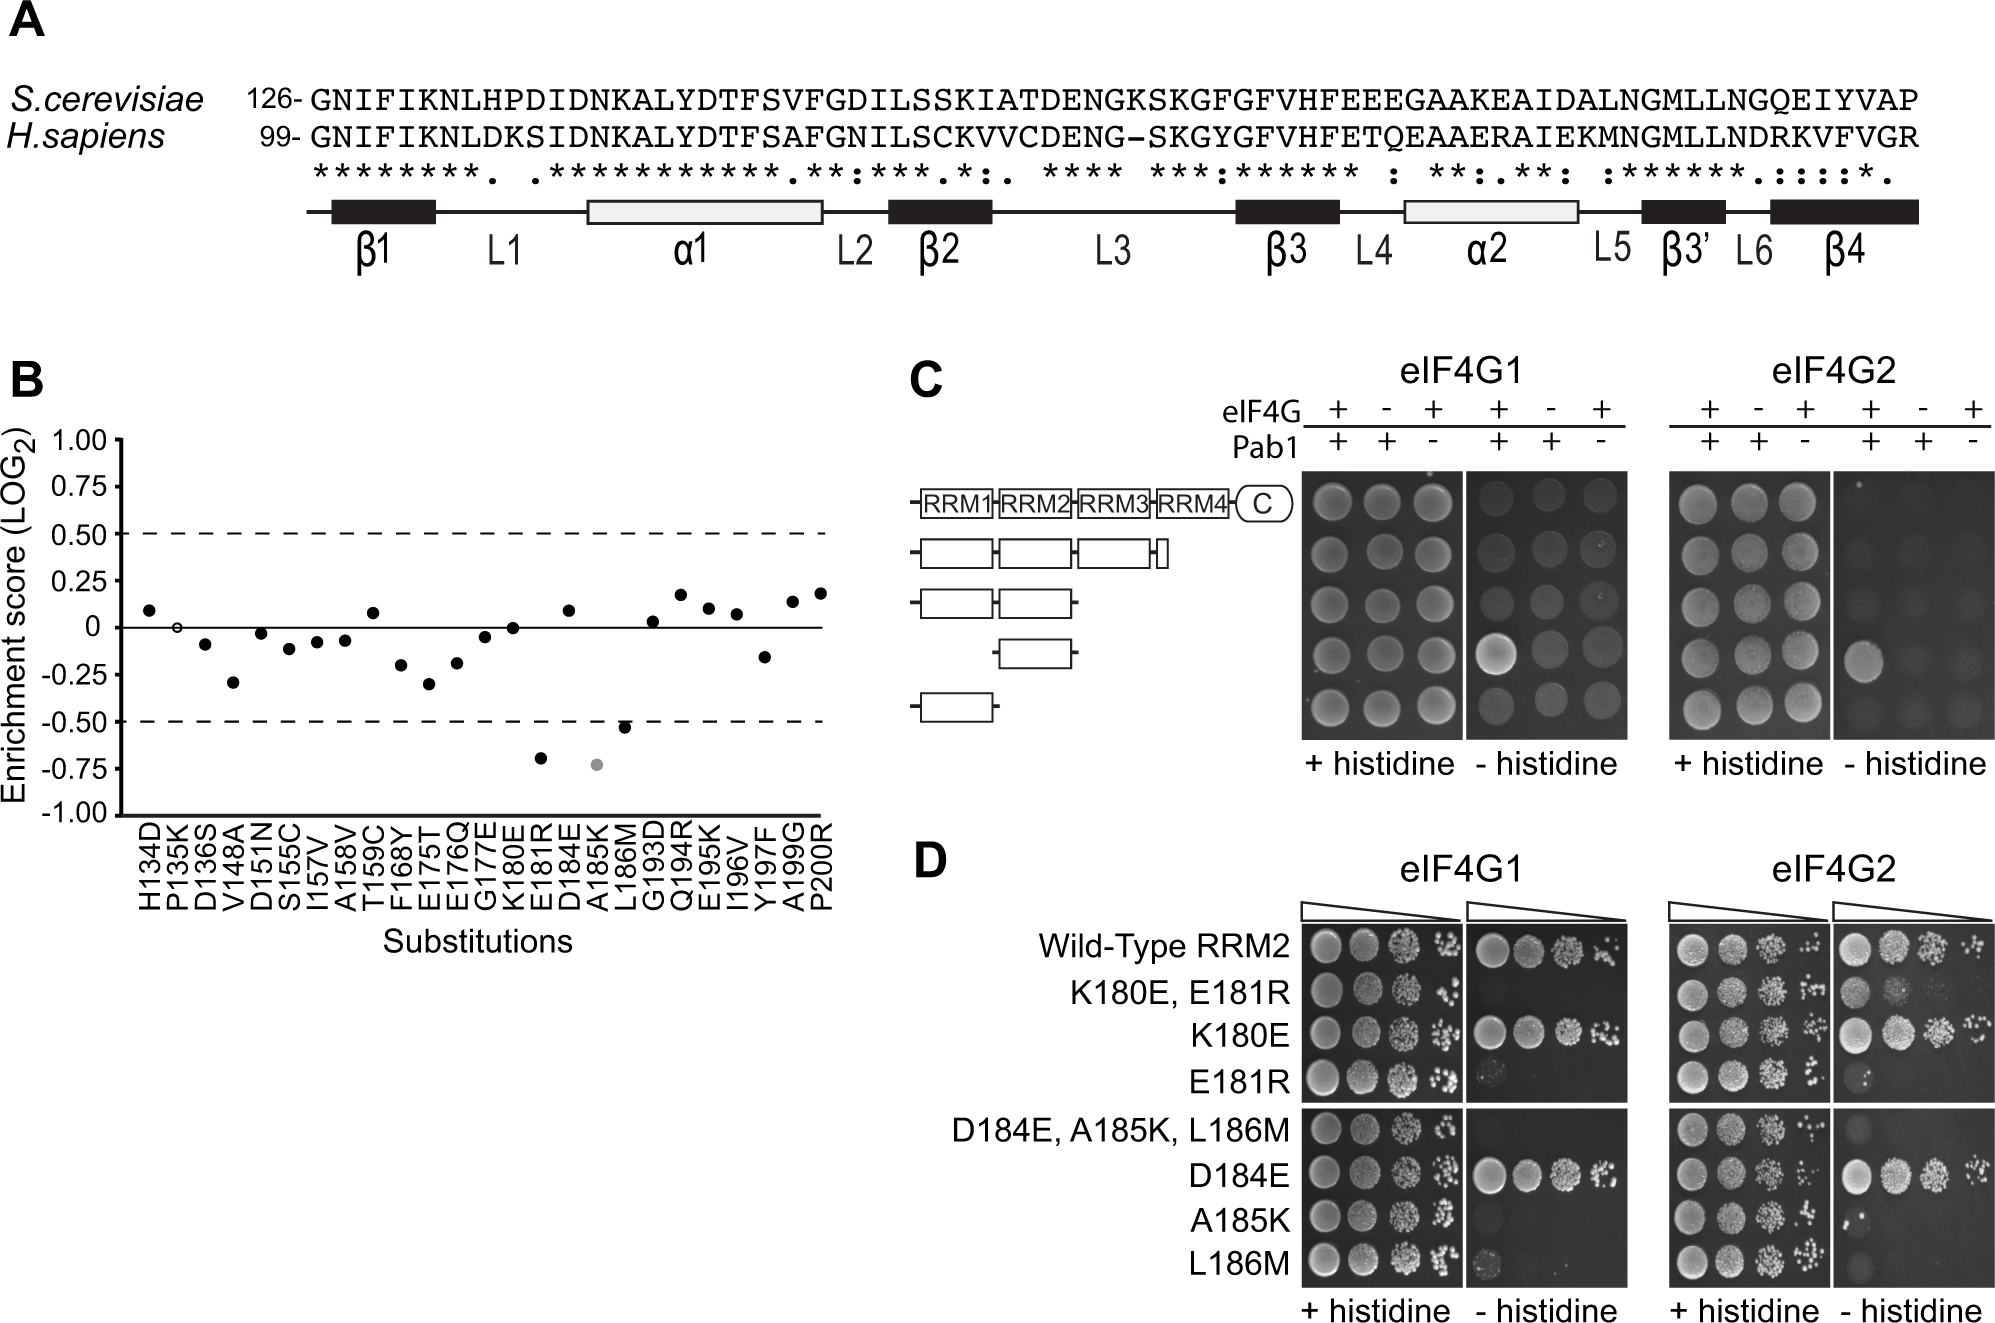 Functional consequences of single amino acid substitutions corresponding to residues found in the human RRM2 domain.